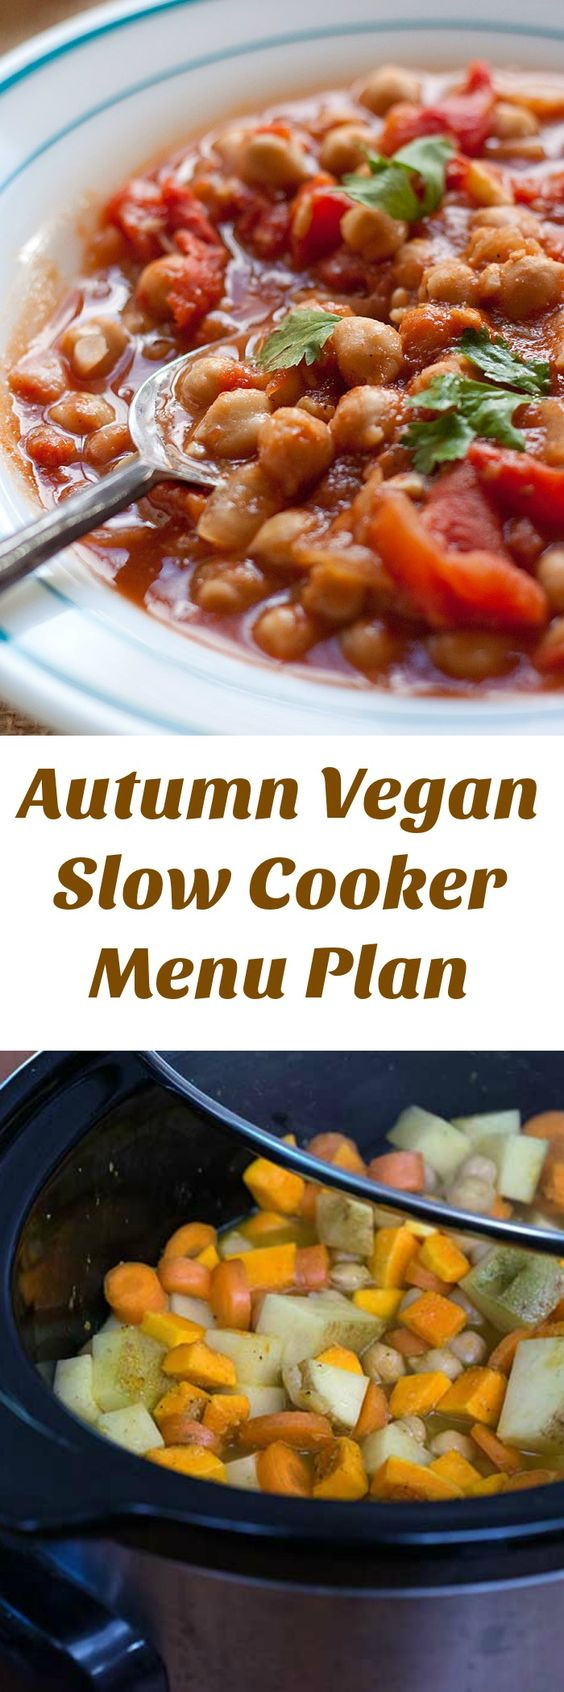 Fall Main Dishes  A Vegan Slow Cooker Menu Plan That Makes Autumn Easy